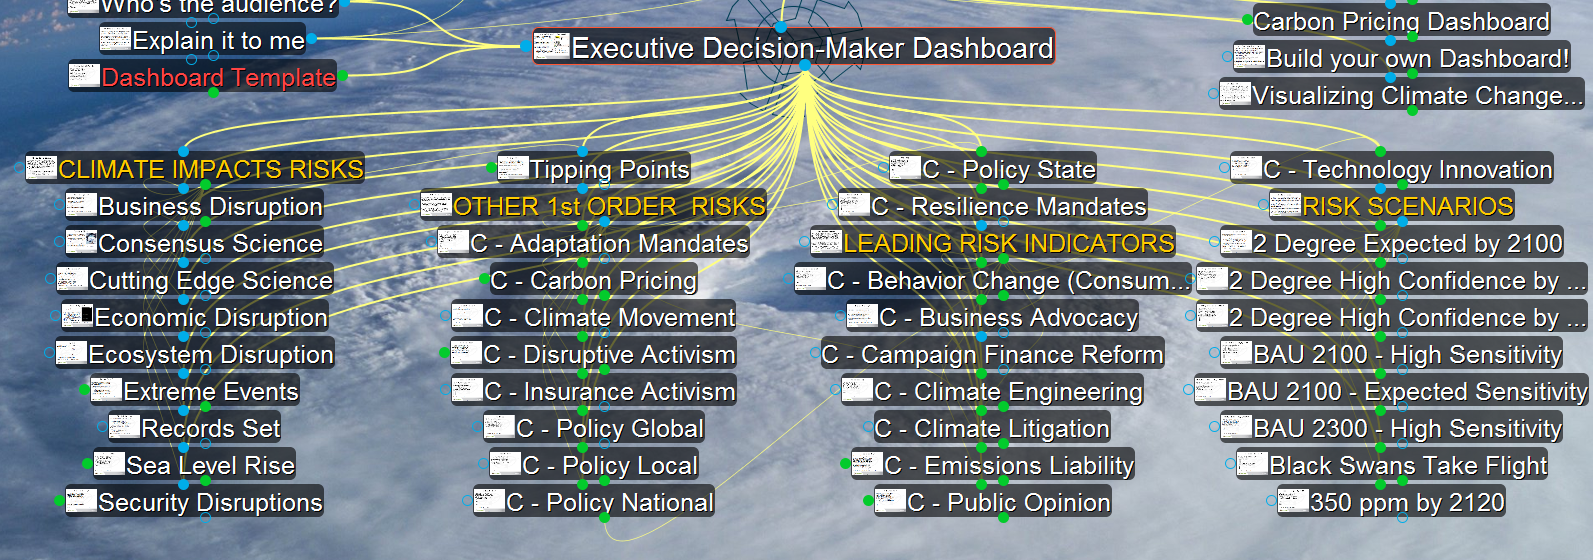 Executive dashboard.png